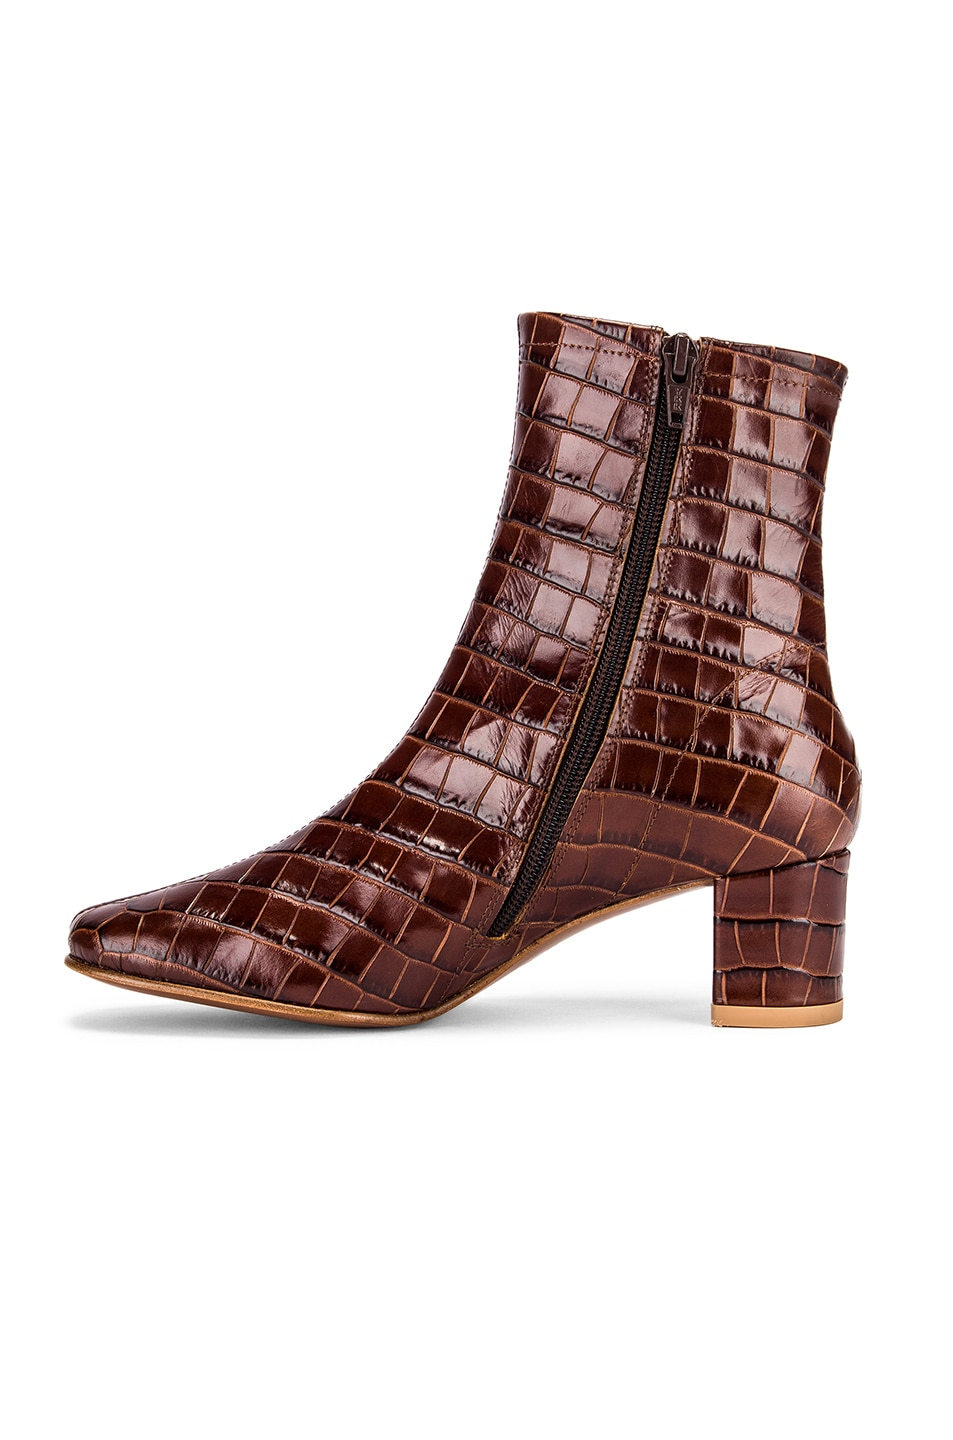 Image 5 of BY FAR Sofia Croco Embossed Leather Boot in Nutella